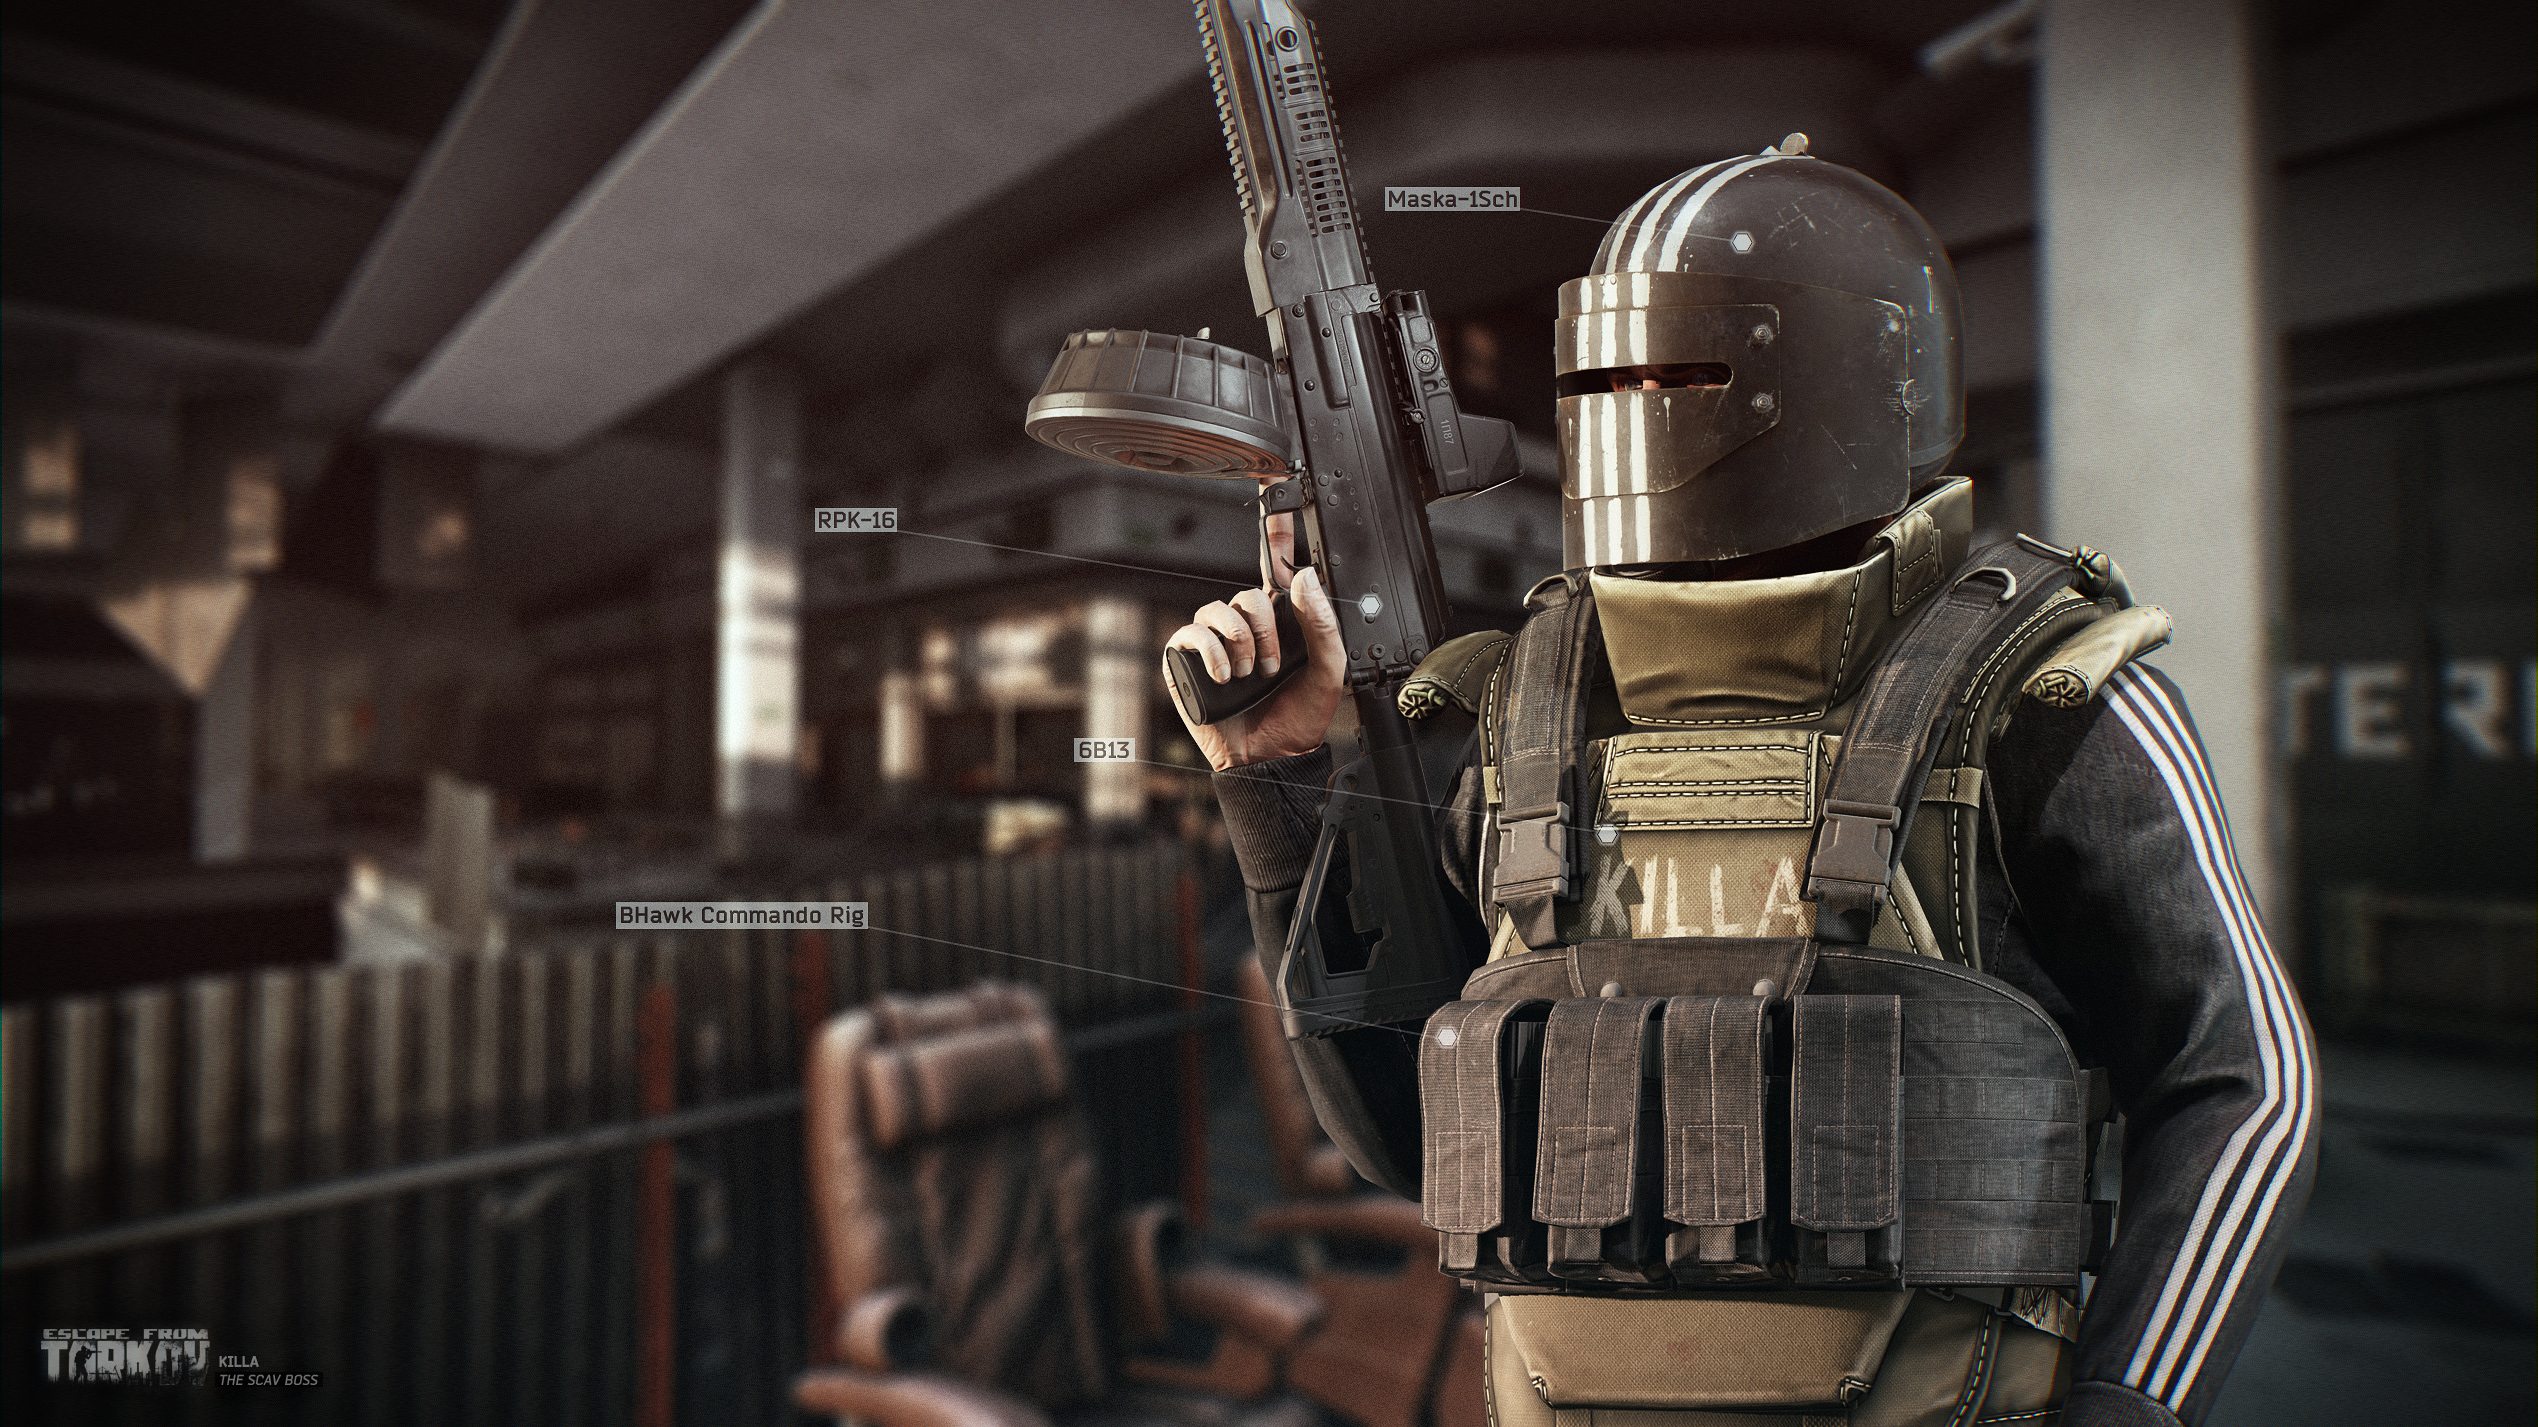 Escape From Tarkov trailer shows new underground lab